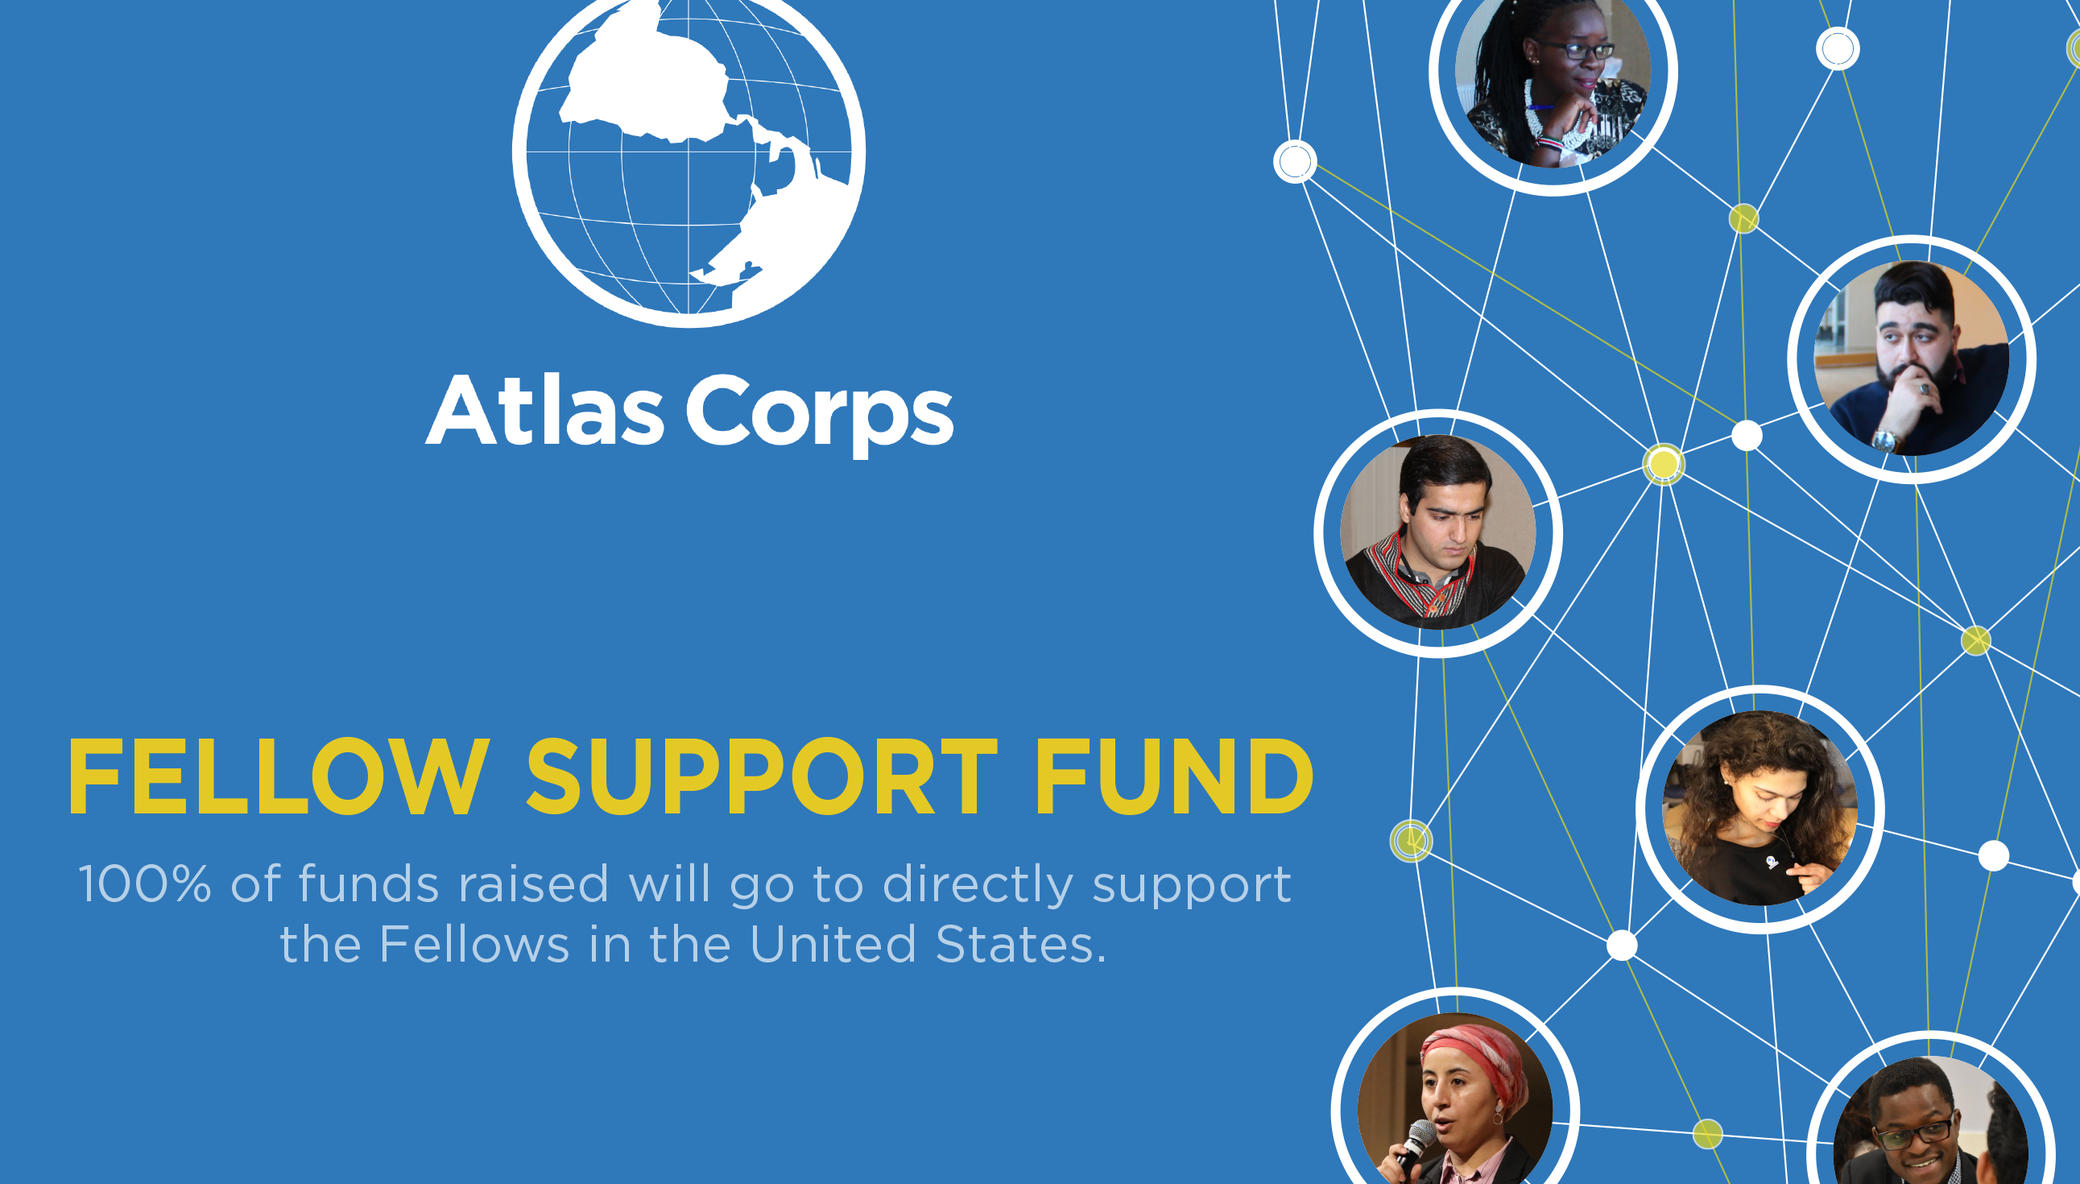 Atlas Corps: Fellow Support